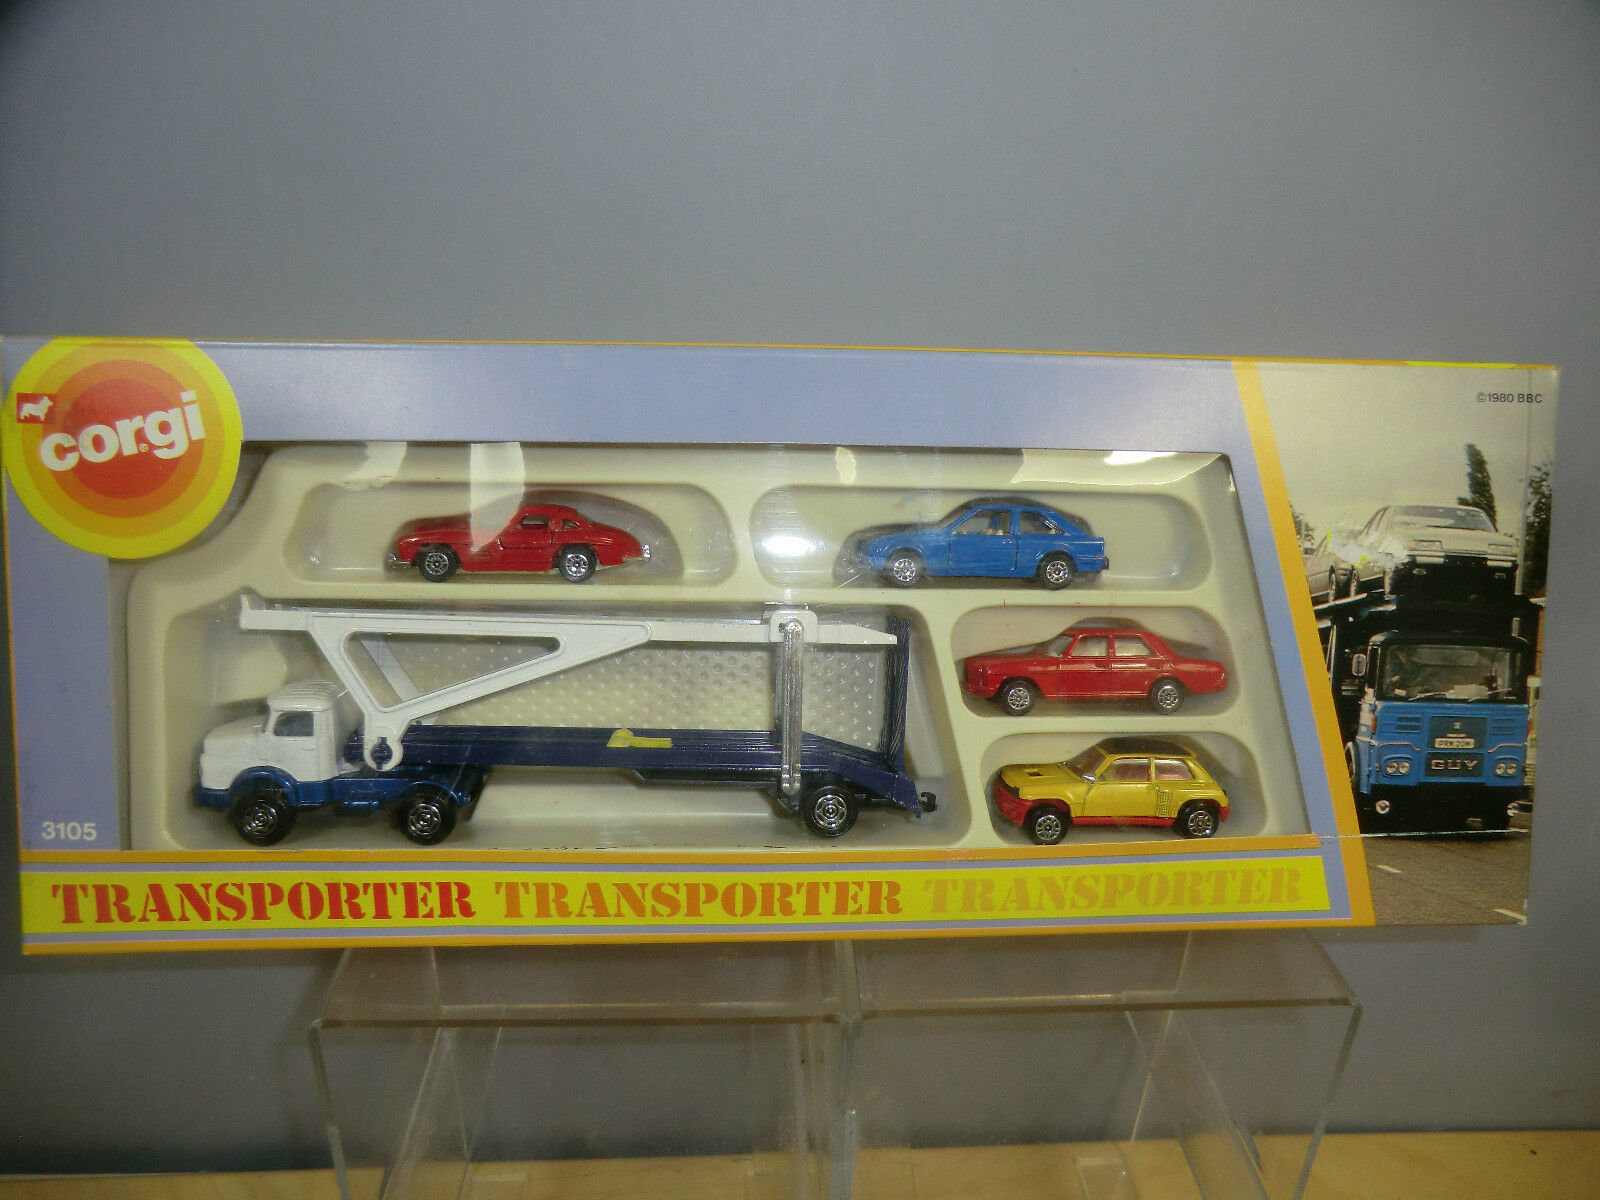 CORGI JUNIOR GIFT SET MODEL   No.3105   TRANSPORTER WITH 4 CARS            MIB